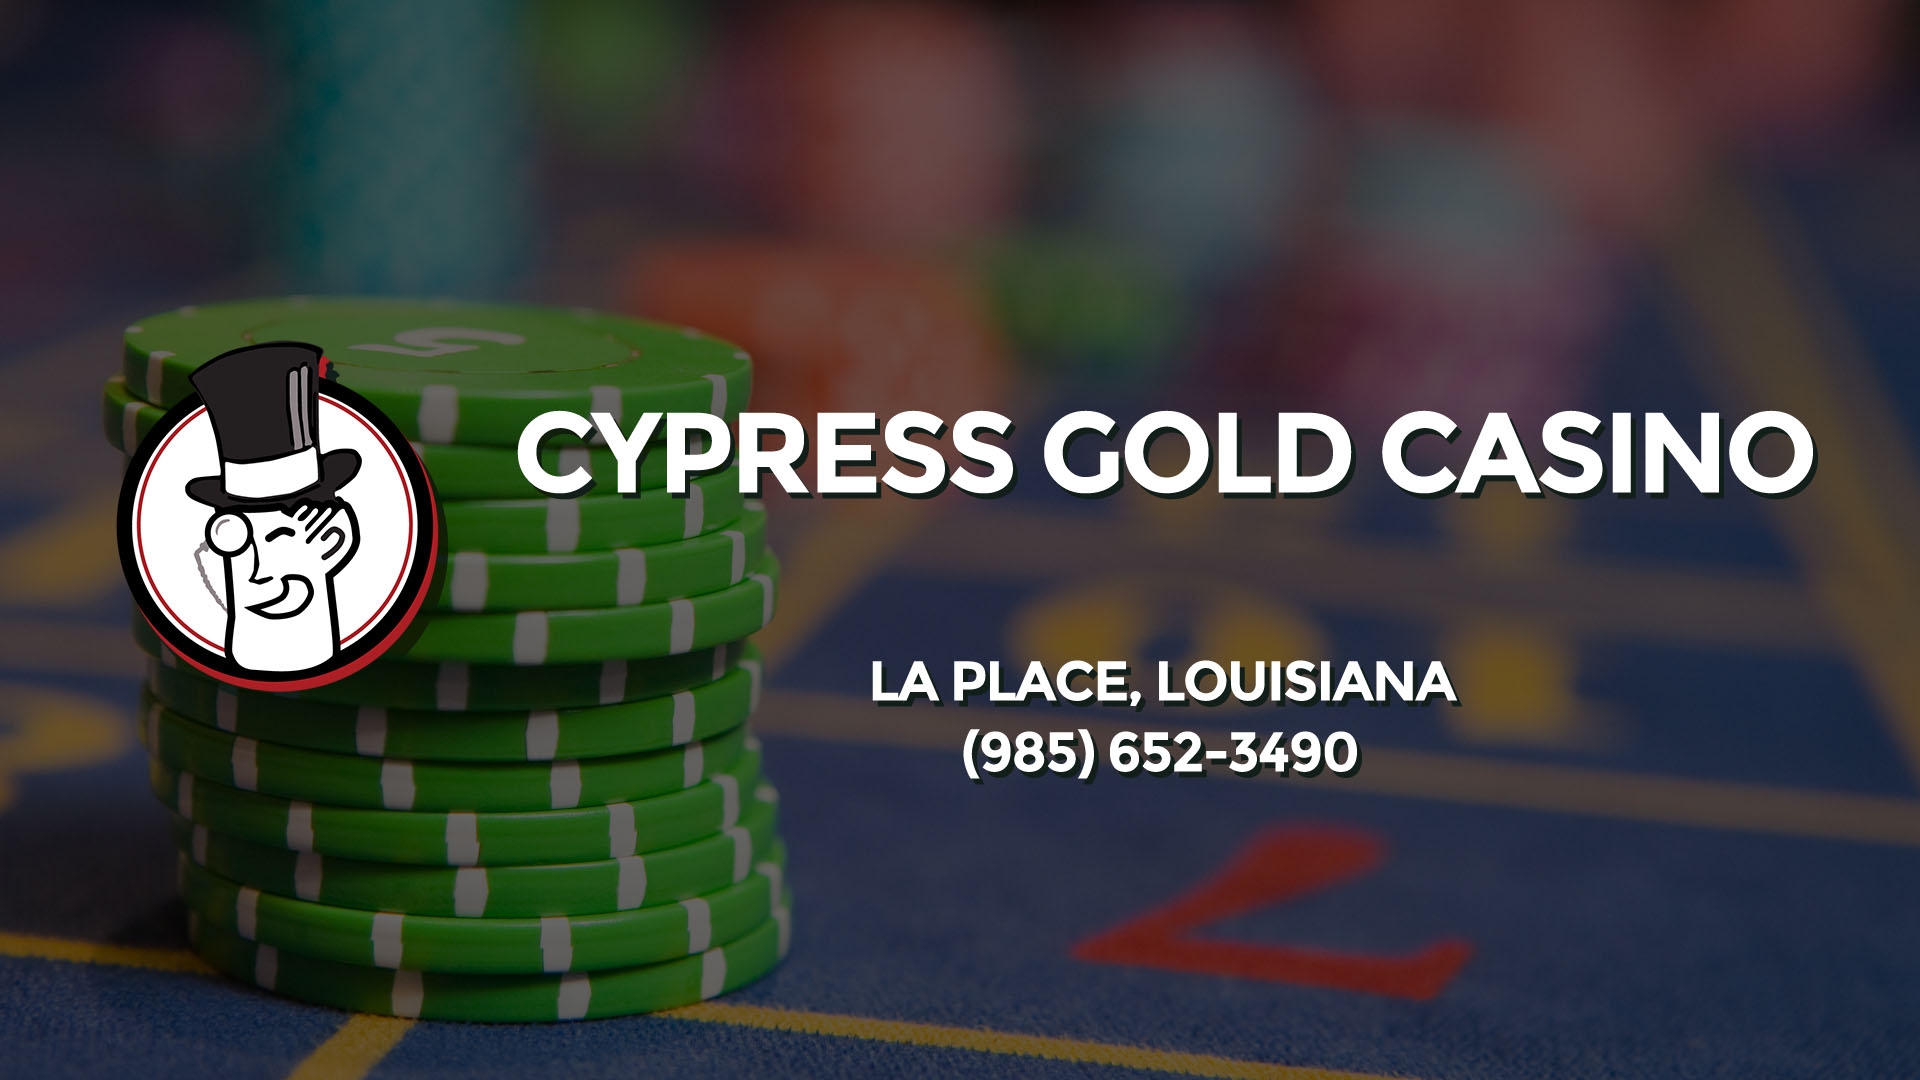 Louisiana casinos buses kich hoat game fifa online 2